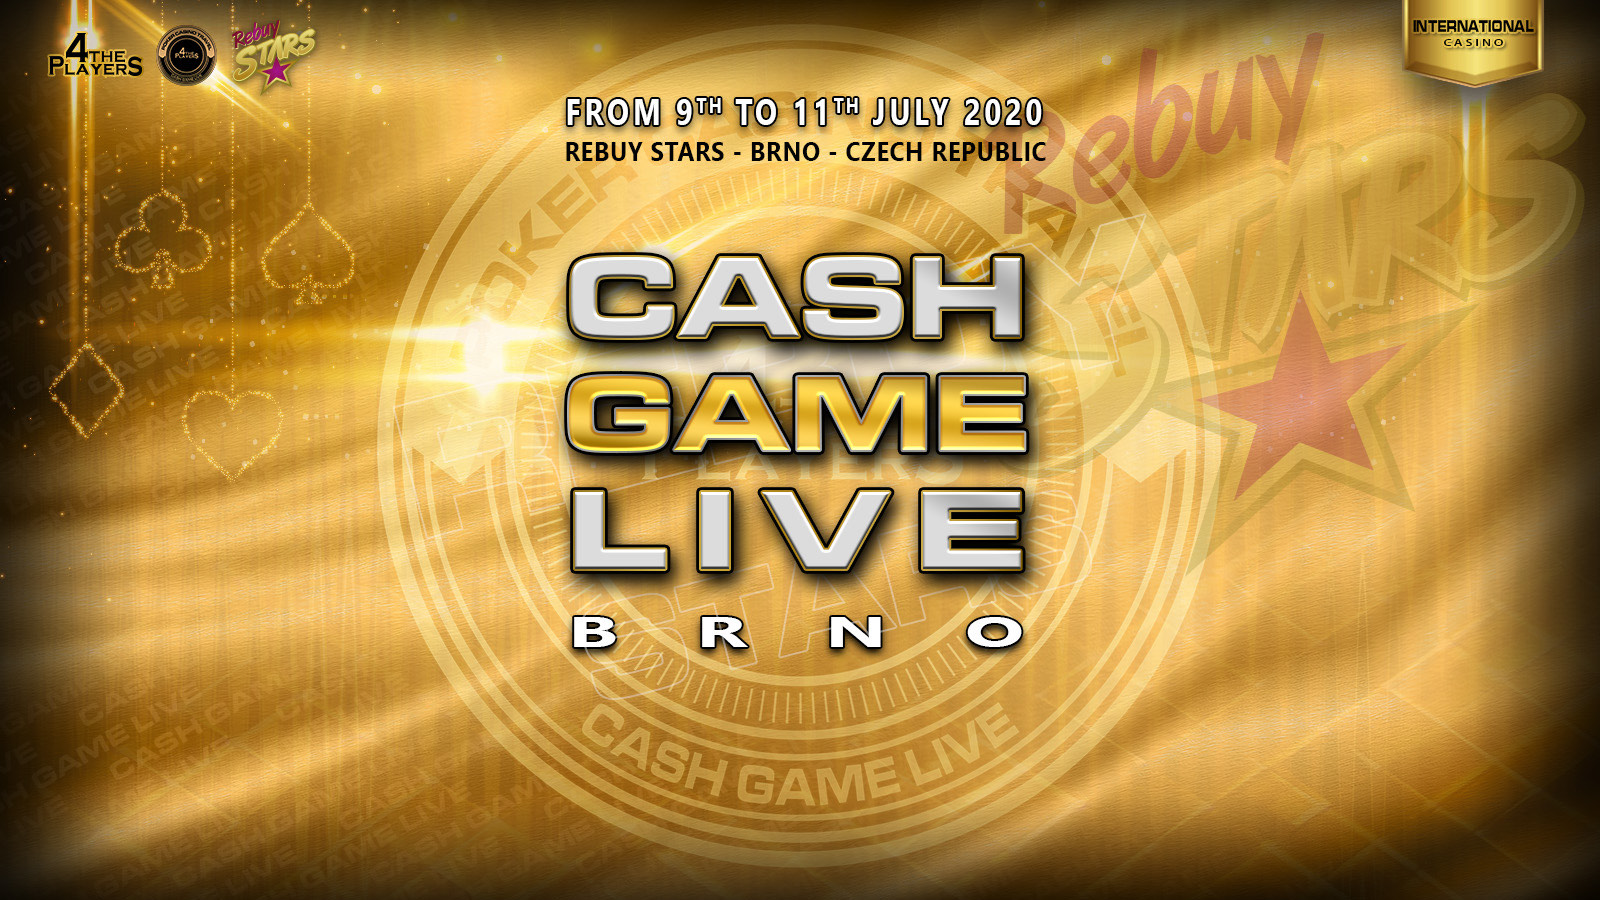 Rebuy Stars - Casino - CASH GAME LIVE - vol 3 - International Brno - banner